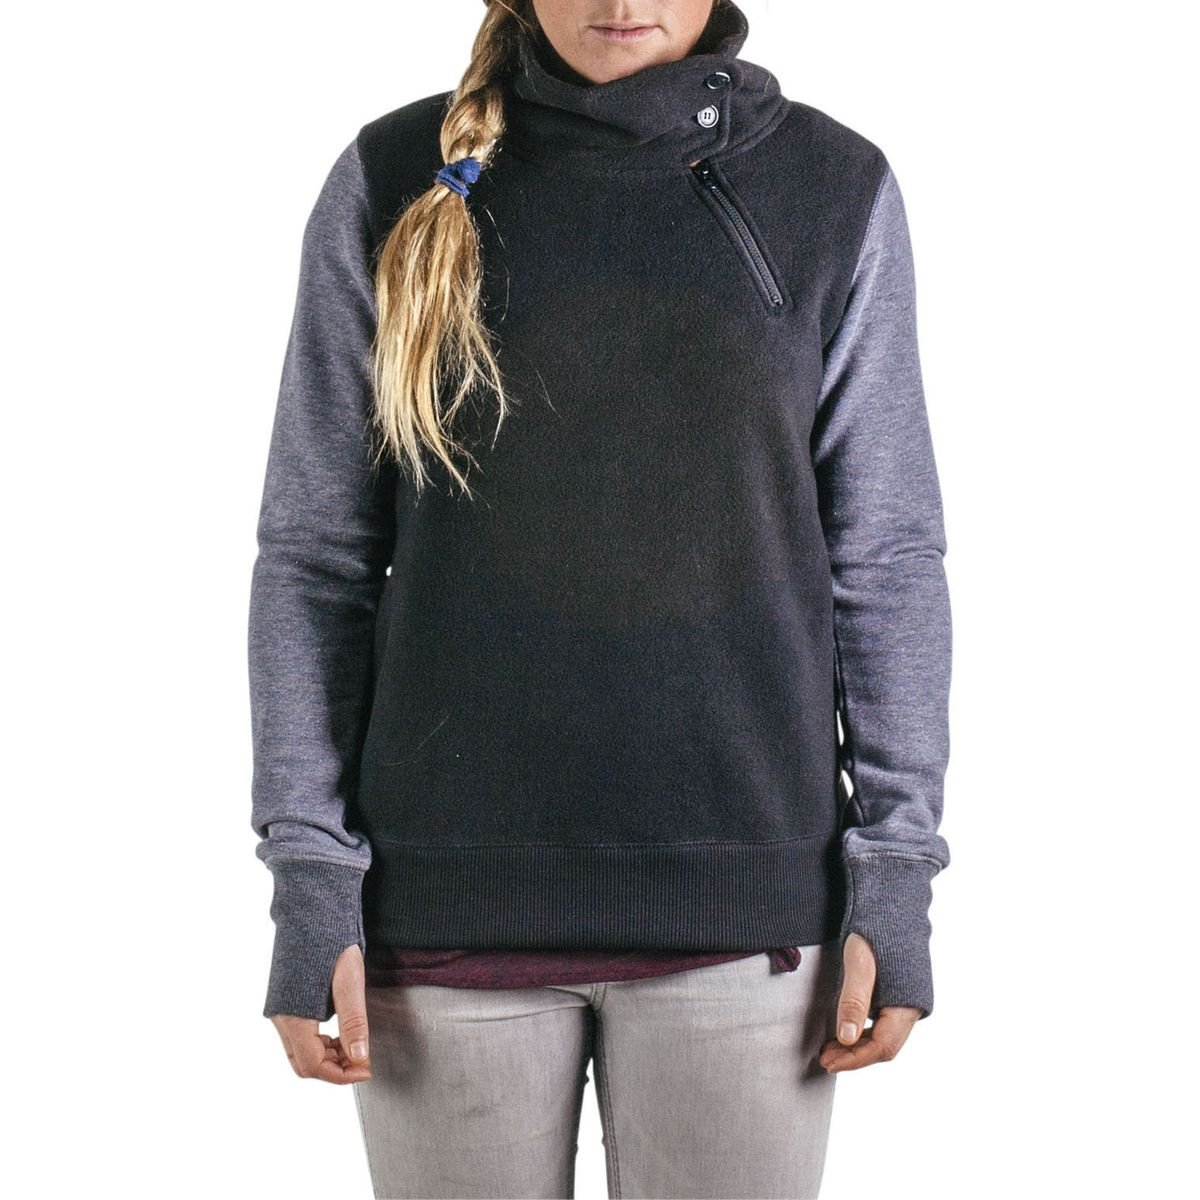 Amazon.com: Holden Sherpa Pullover - Women's Black X-Small: Sports ...